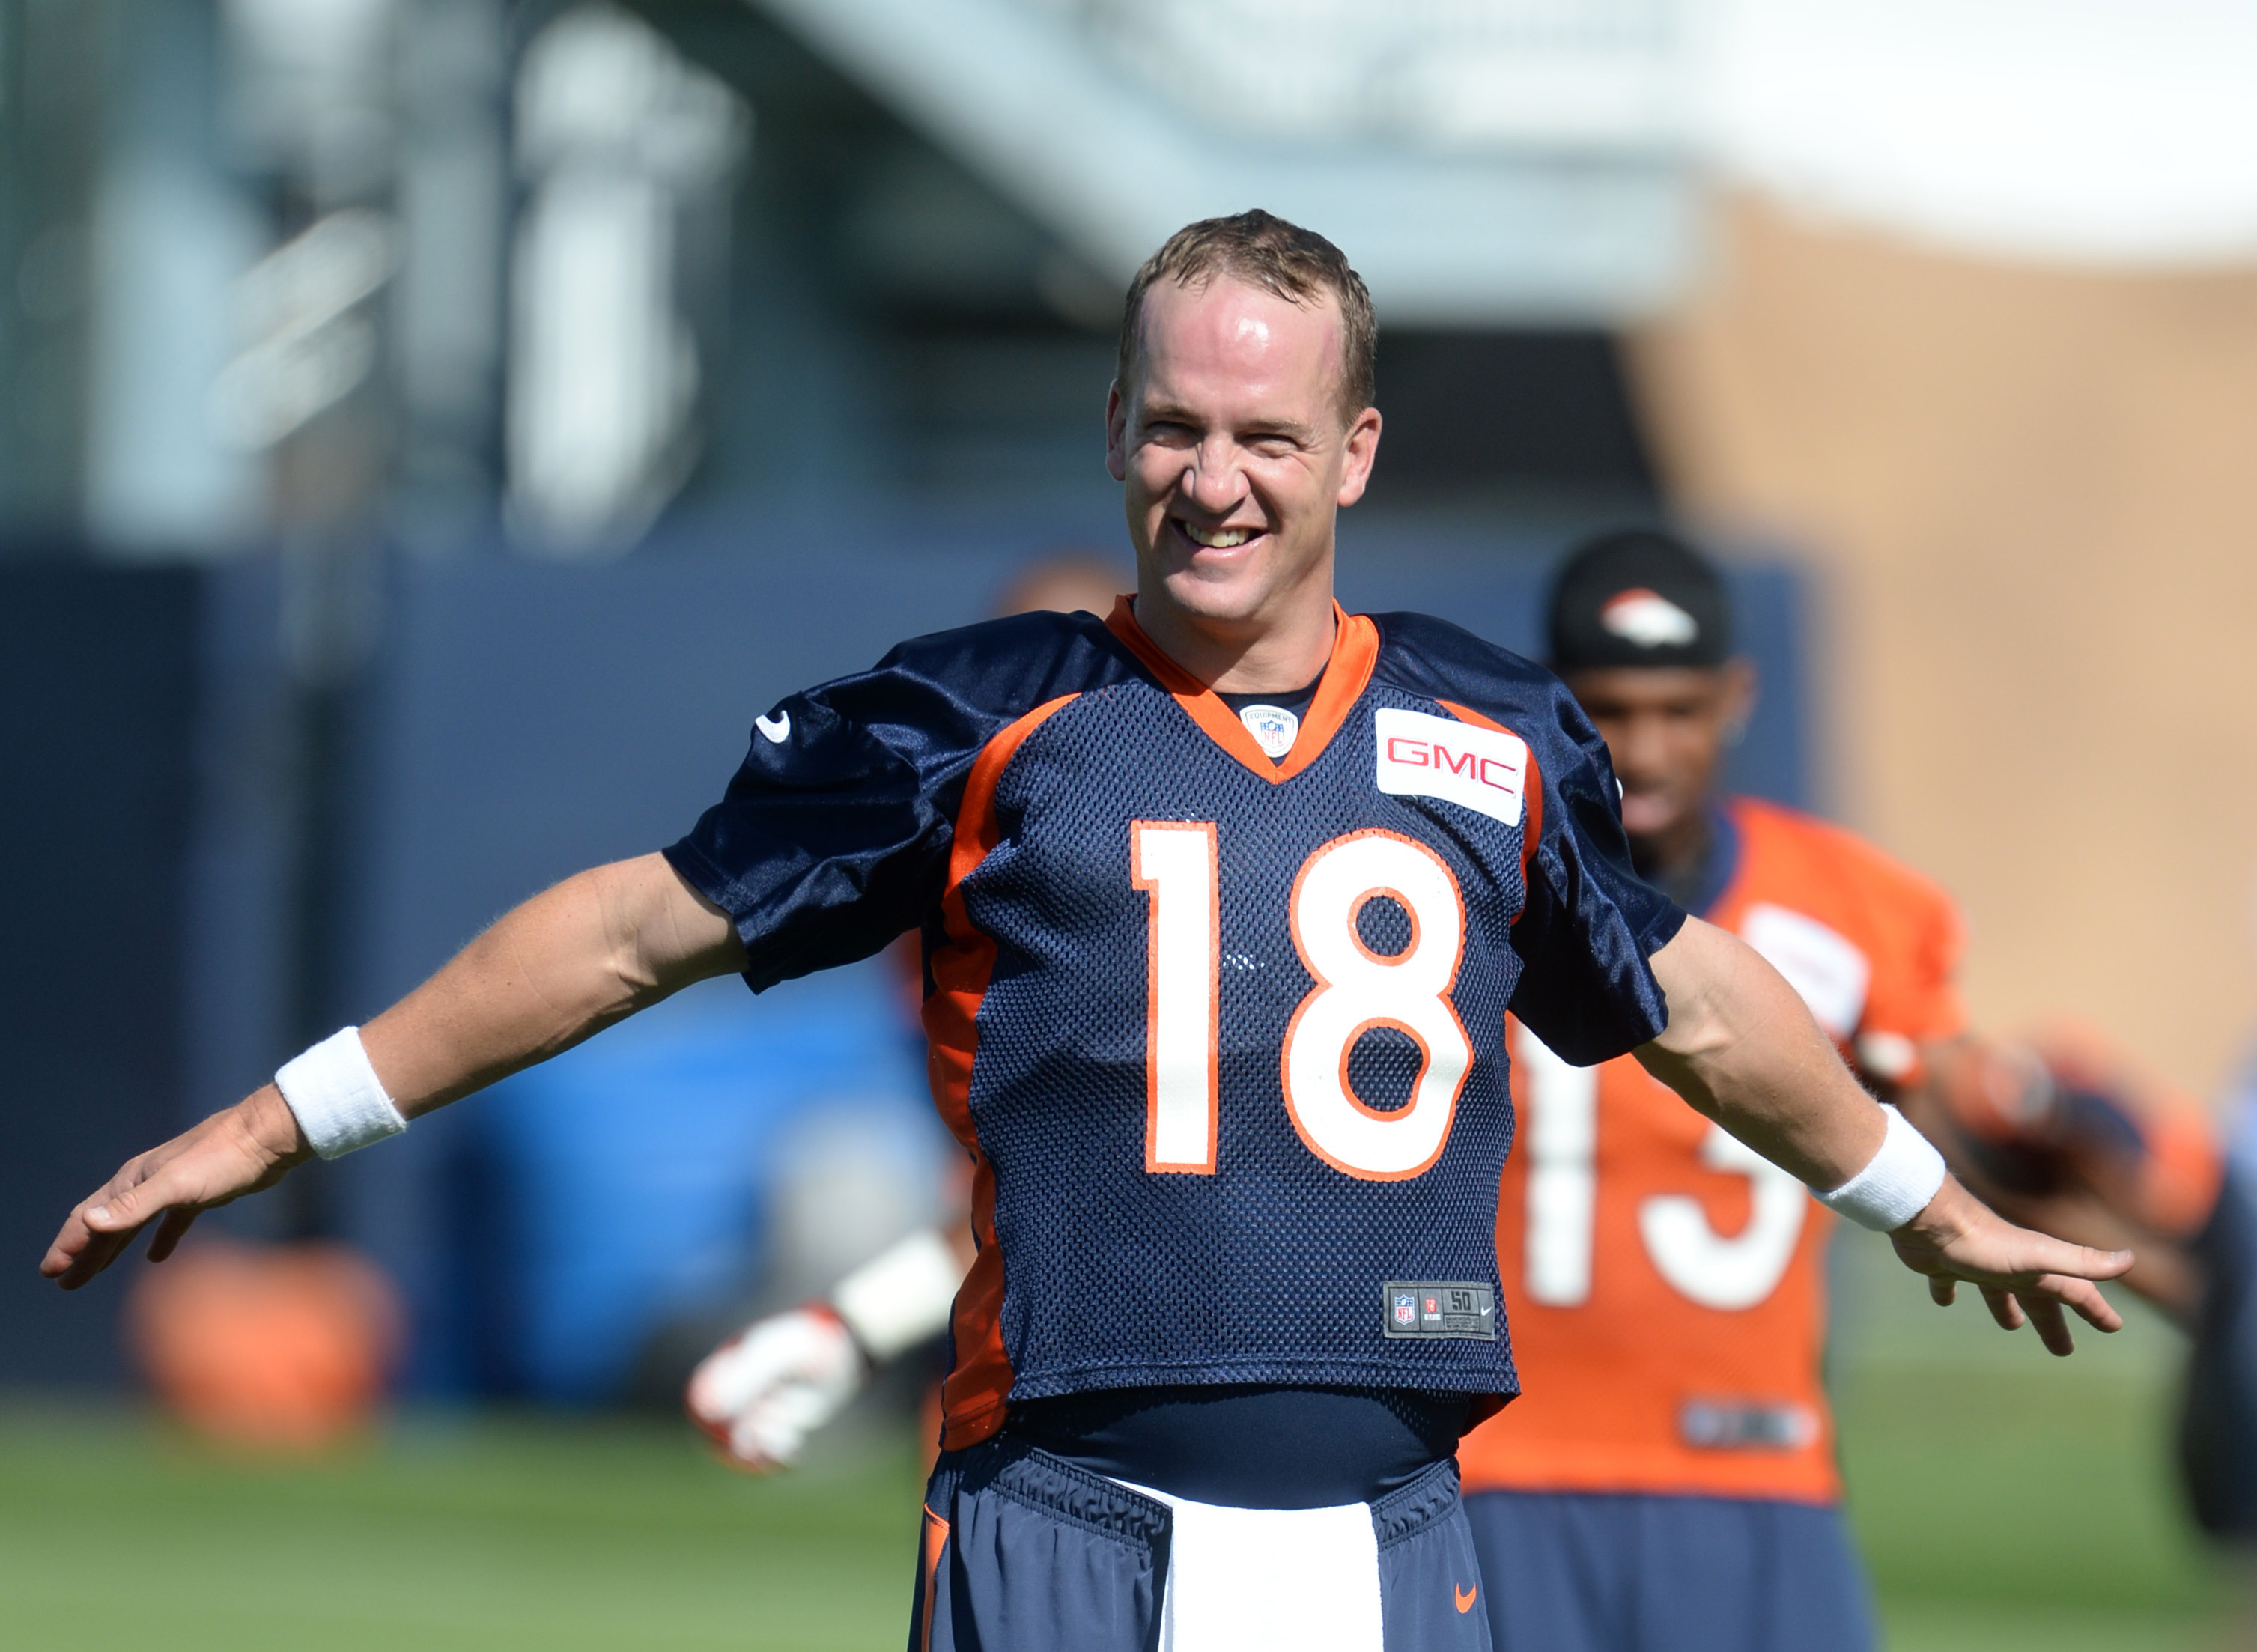 Peyton Manning won the MVP award at age 37 in 2013. (USA TODAY Sports)